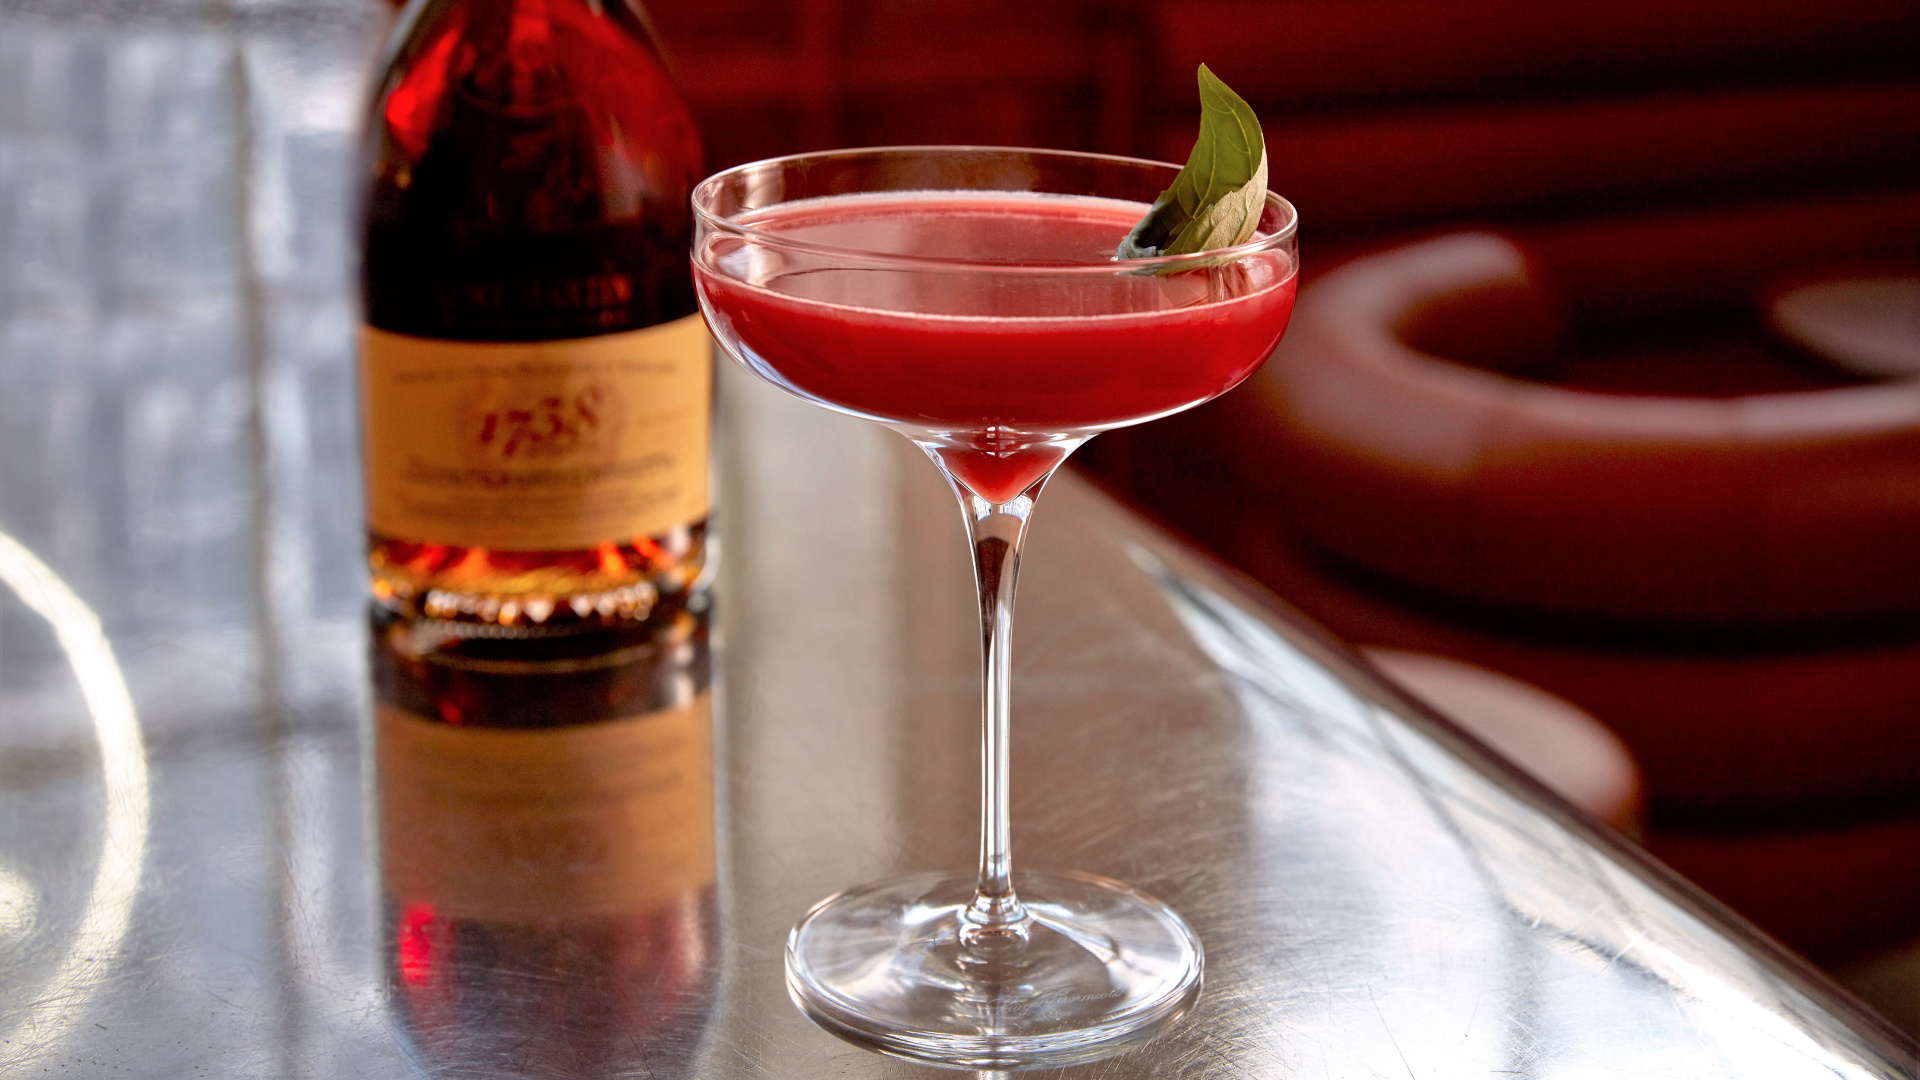 Rémy Martin's strawberry bellini